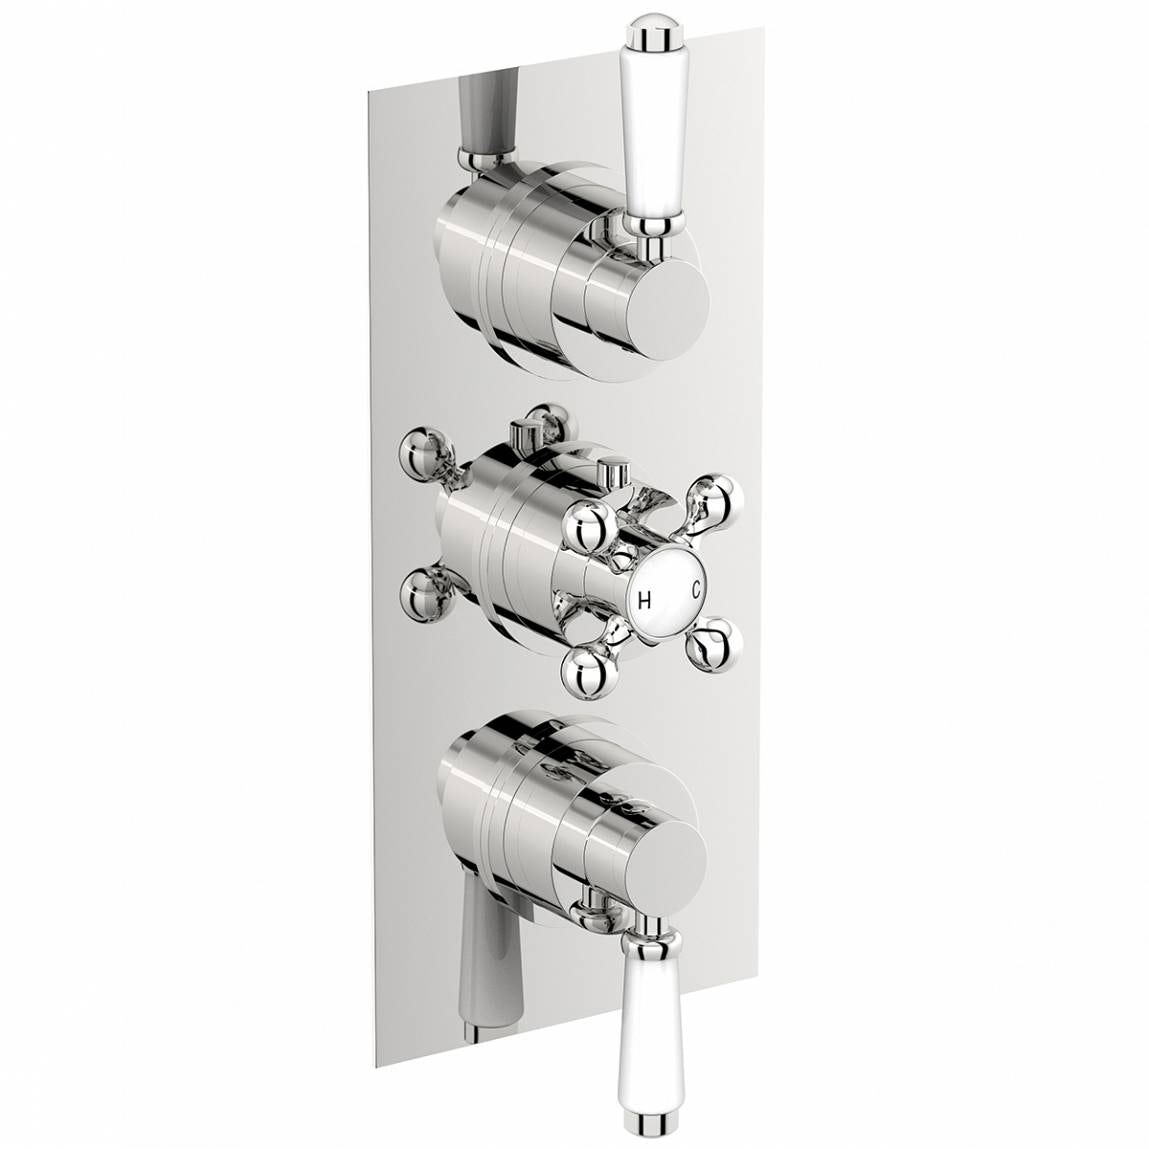 The Bath Co. Traditional square triple thermostatic shower valve with diverter